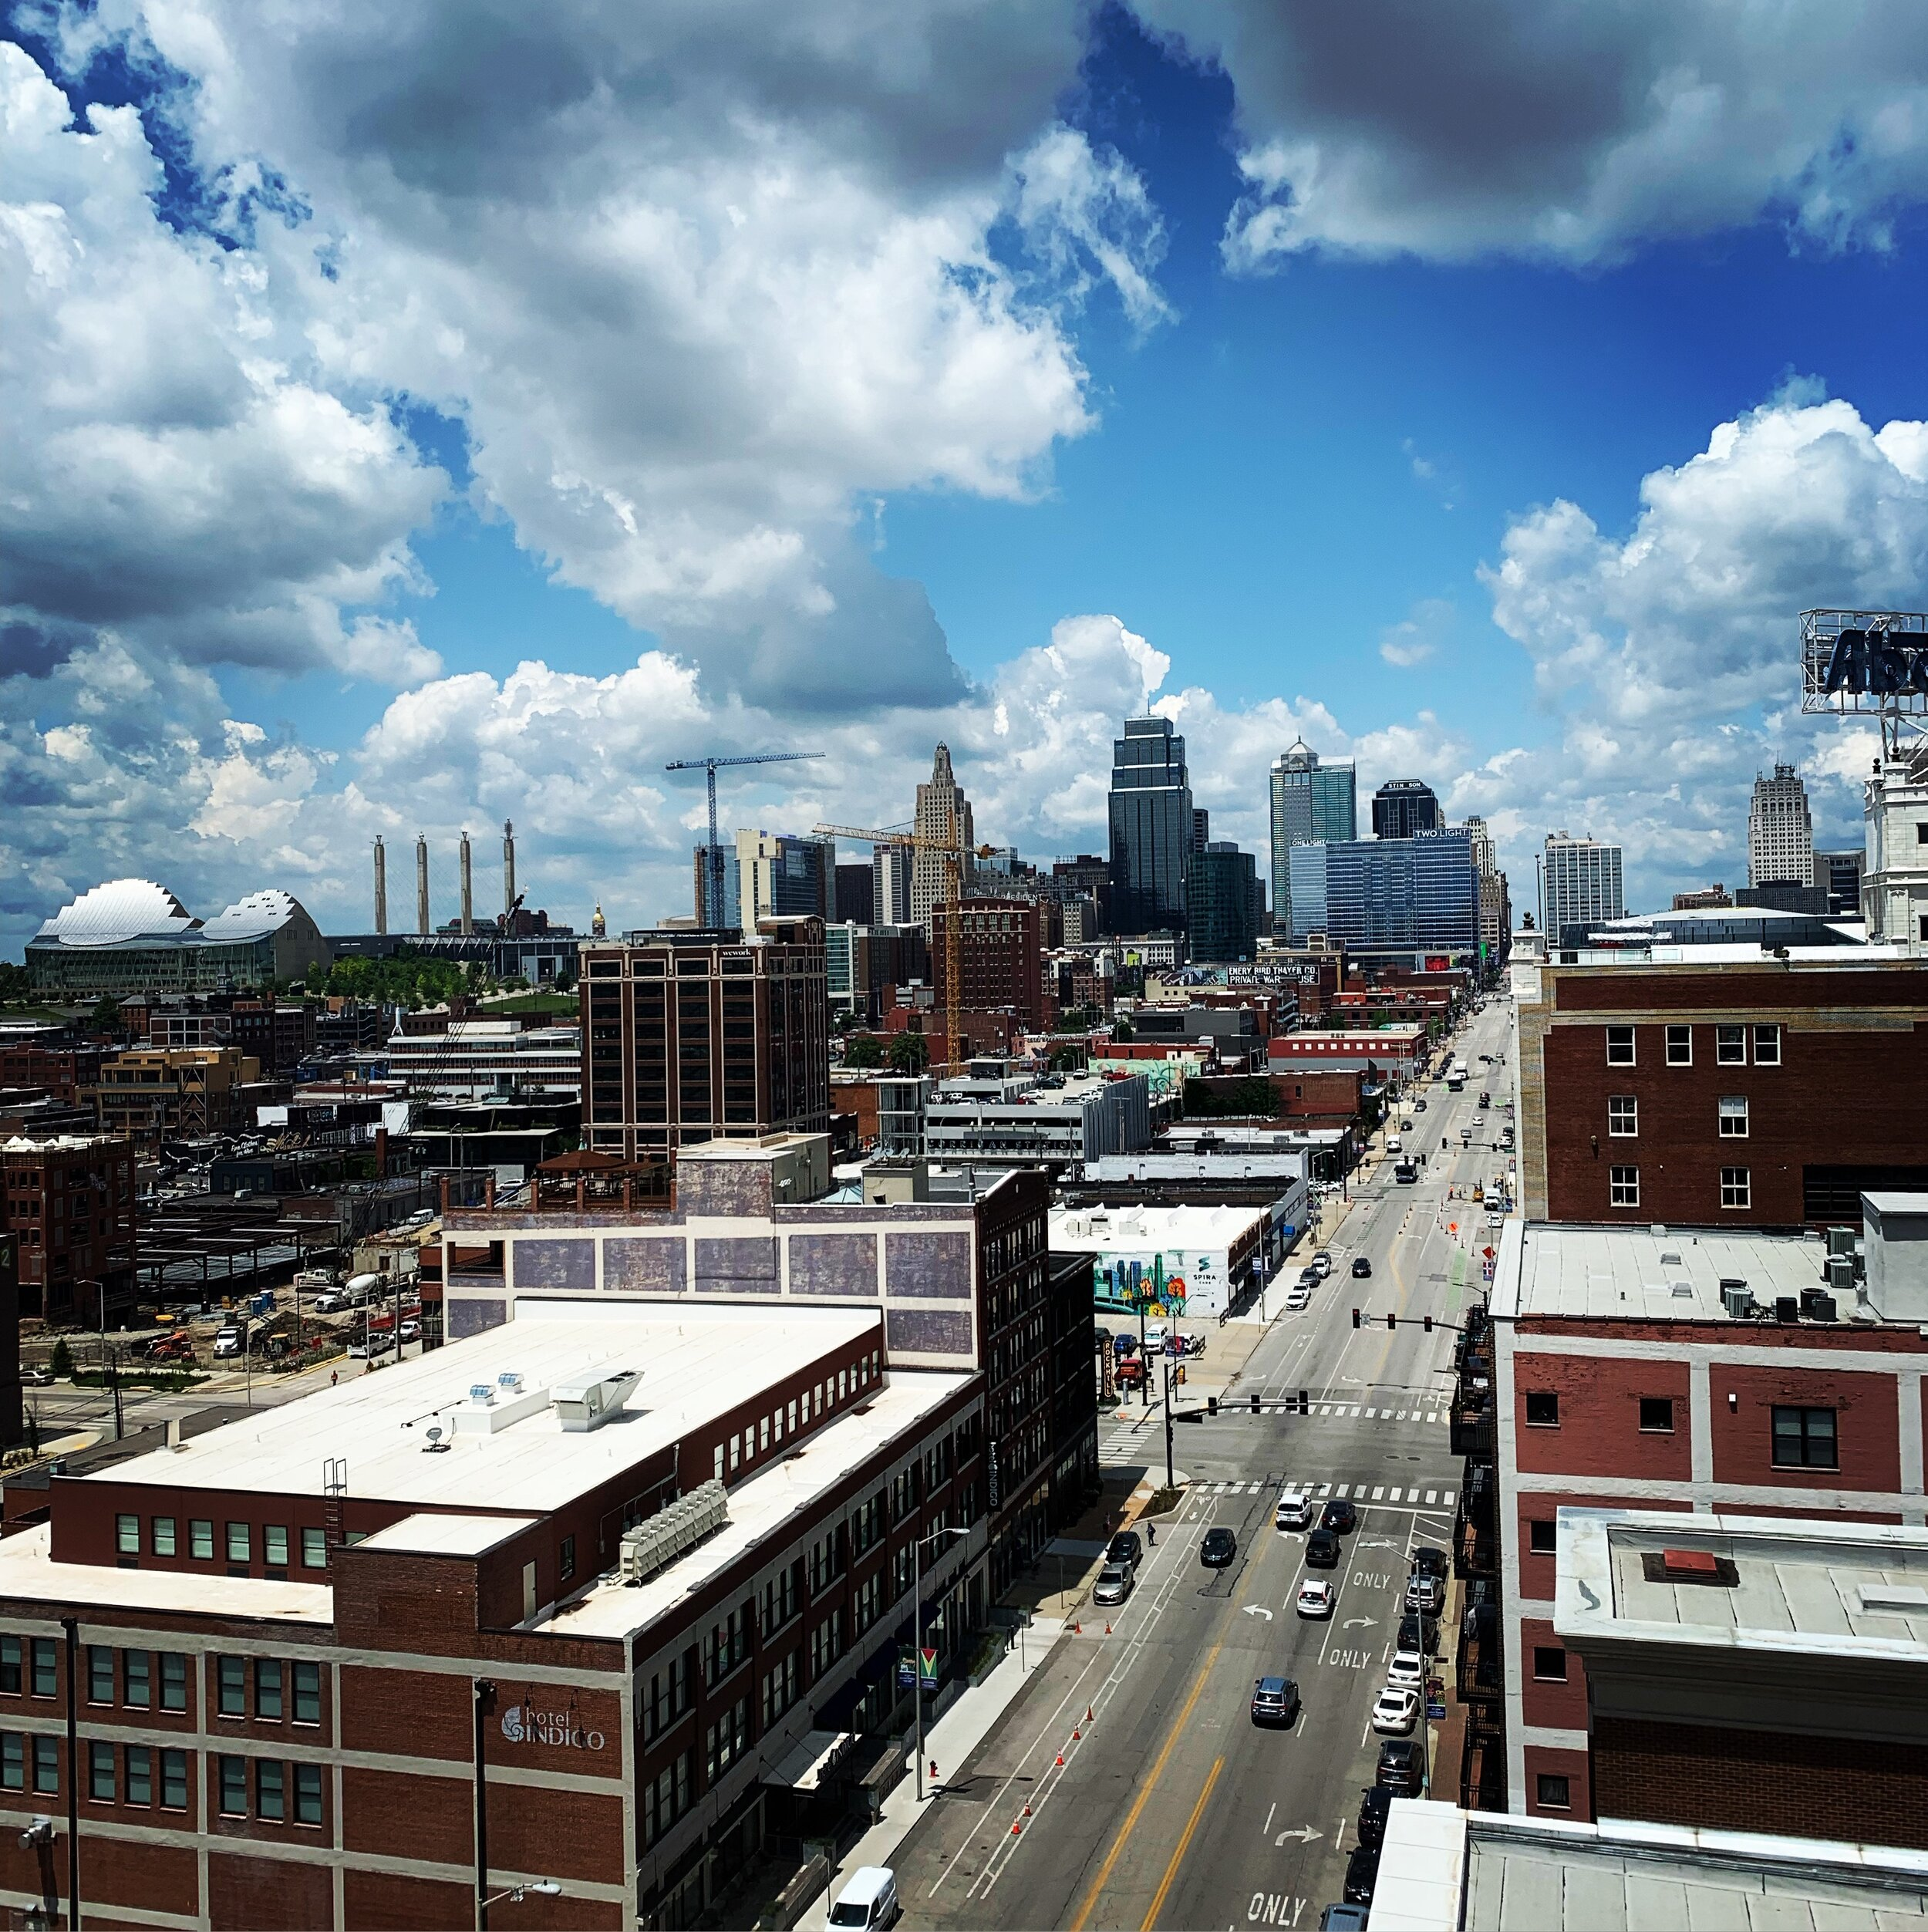 A partly cloudy day in downtown Kansas City, MO, the city where nearly all of the civic engagement for DISC 300 took place.